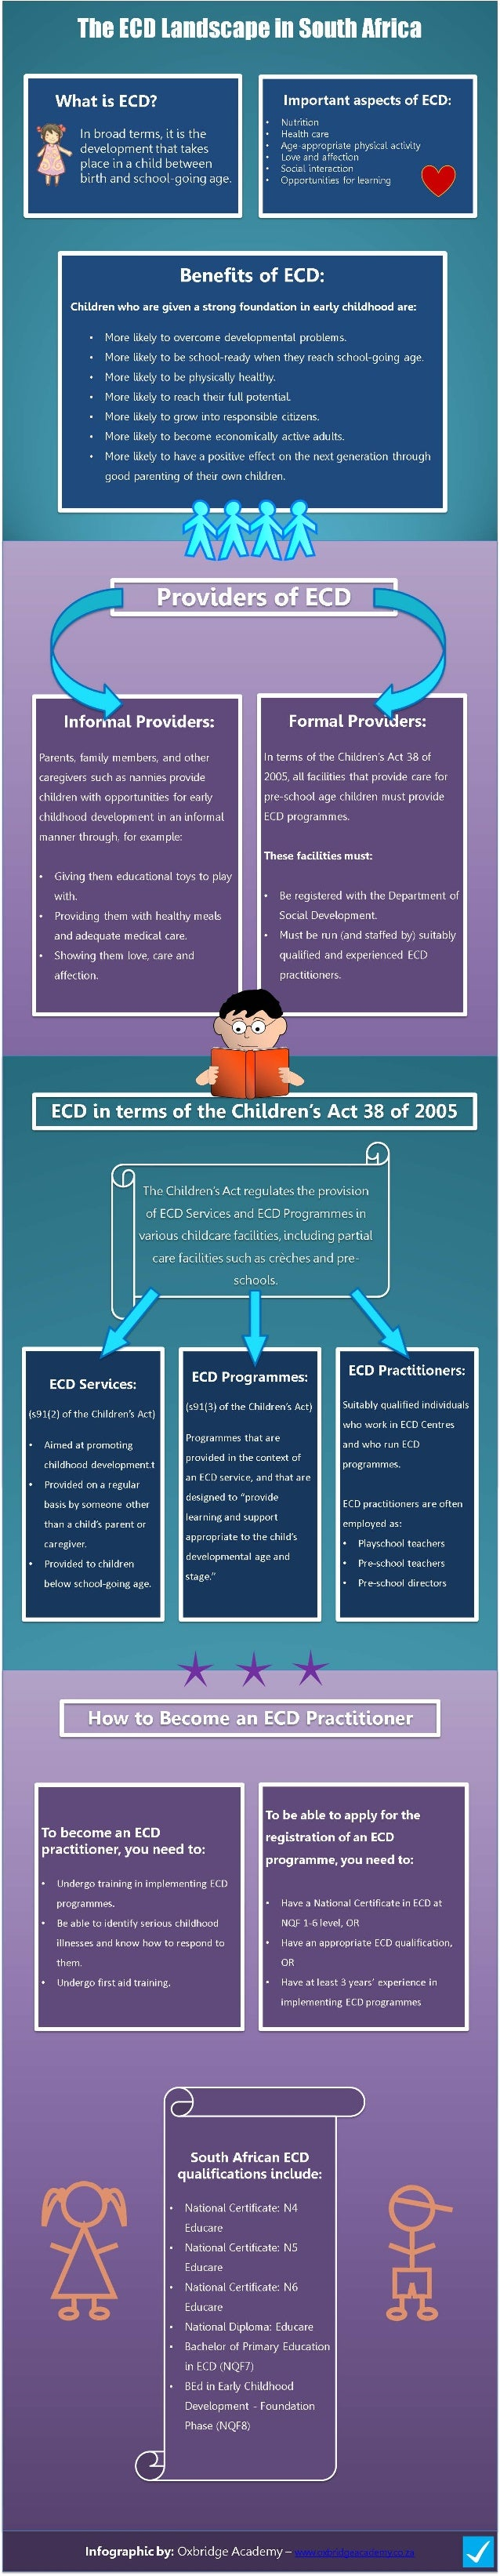 The run lanllscane in South Africa                 What is ECD?  Important aspects of ECD:                                ...